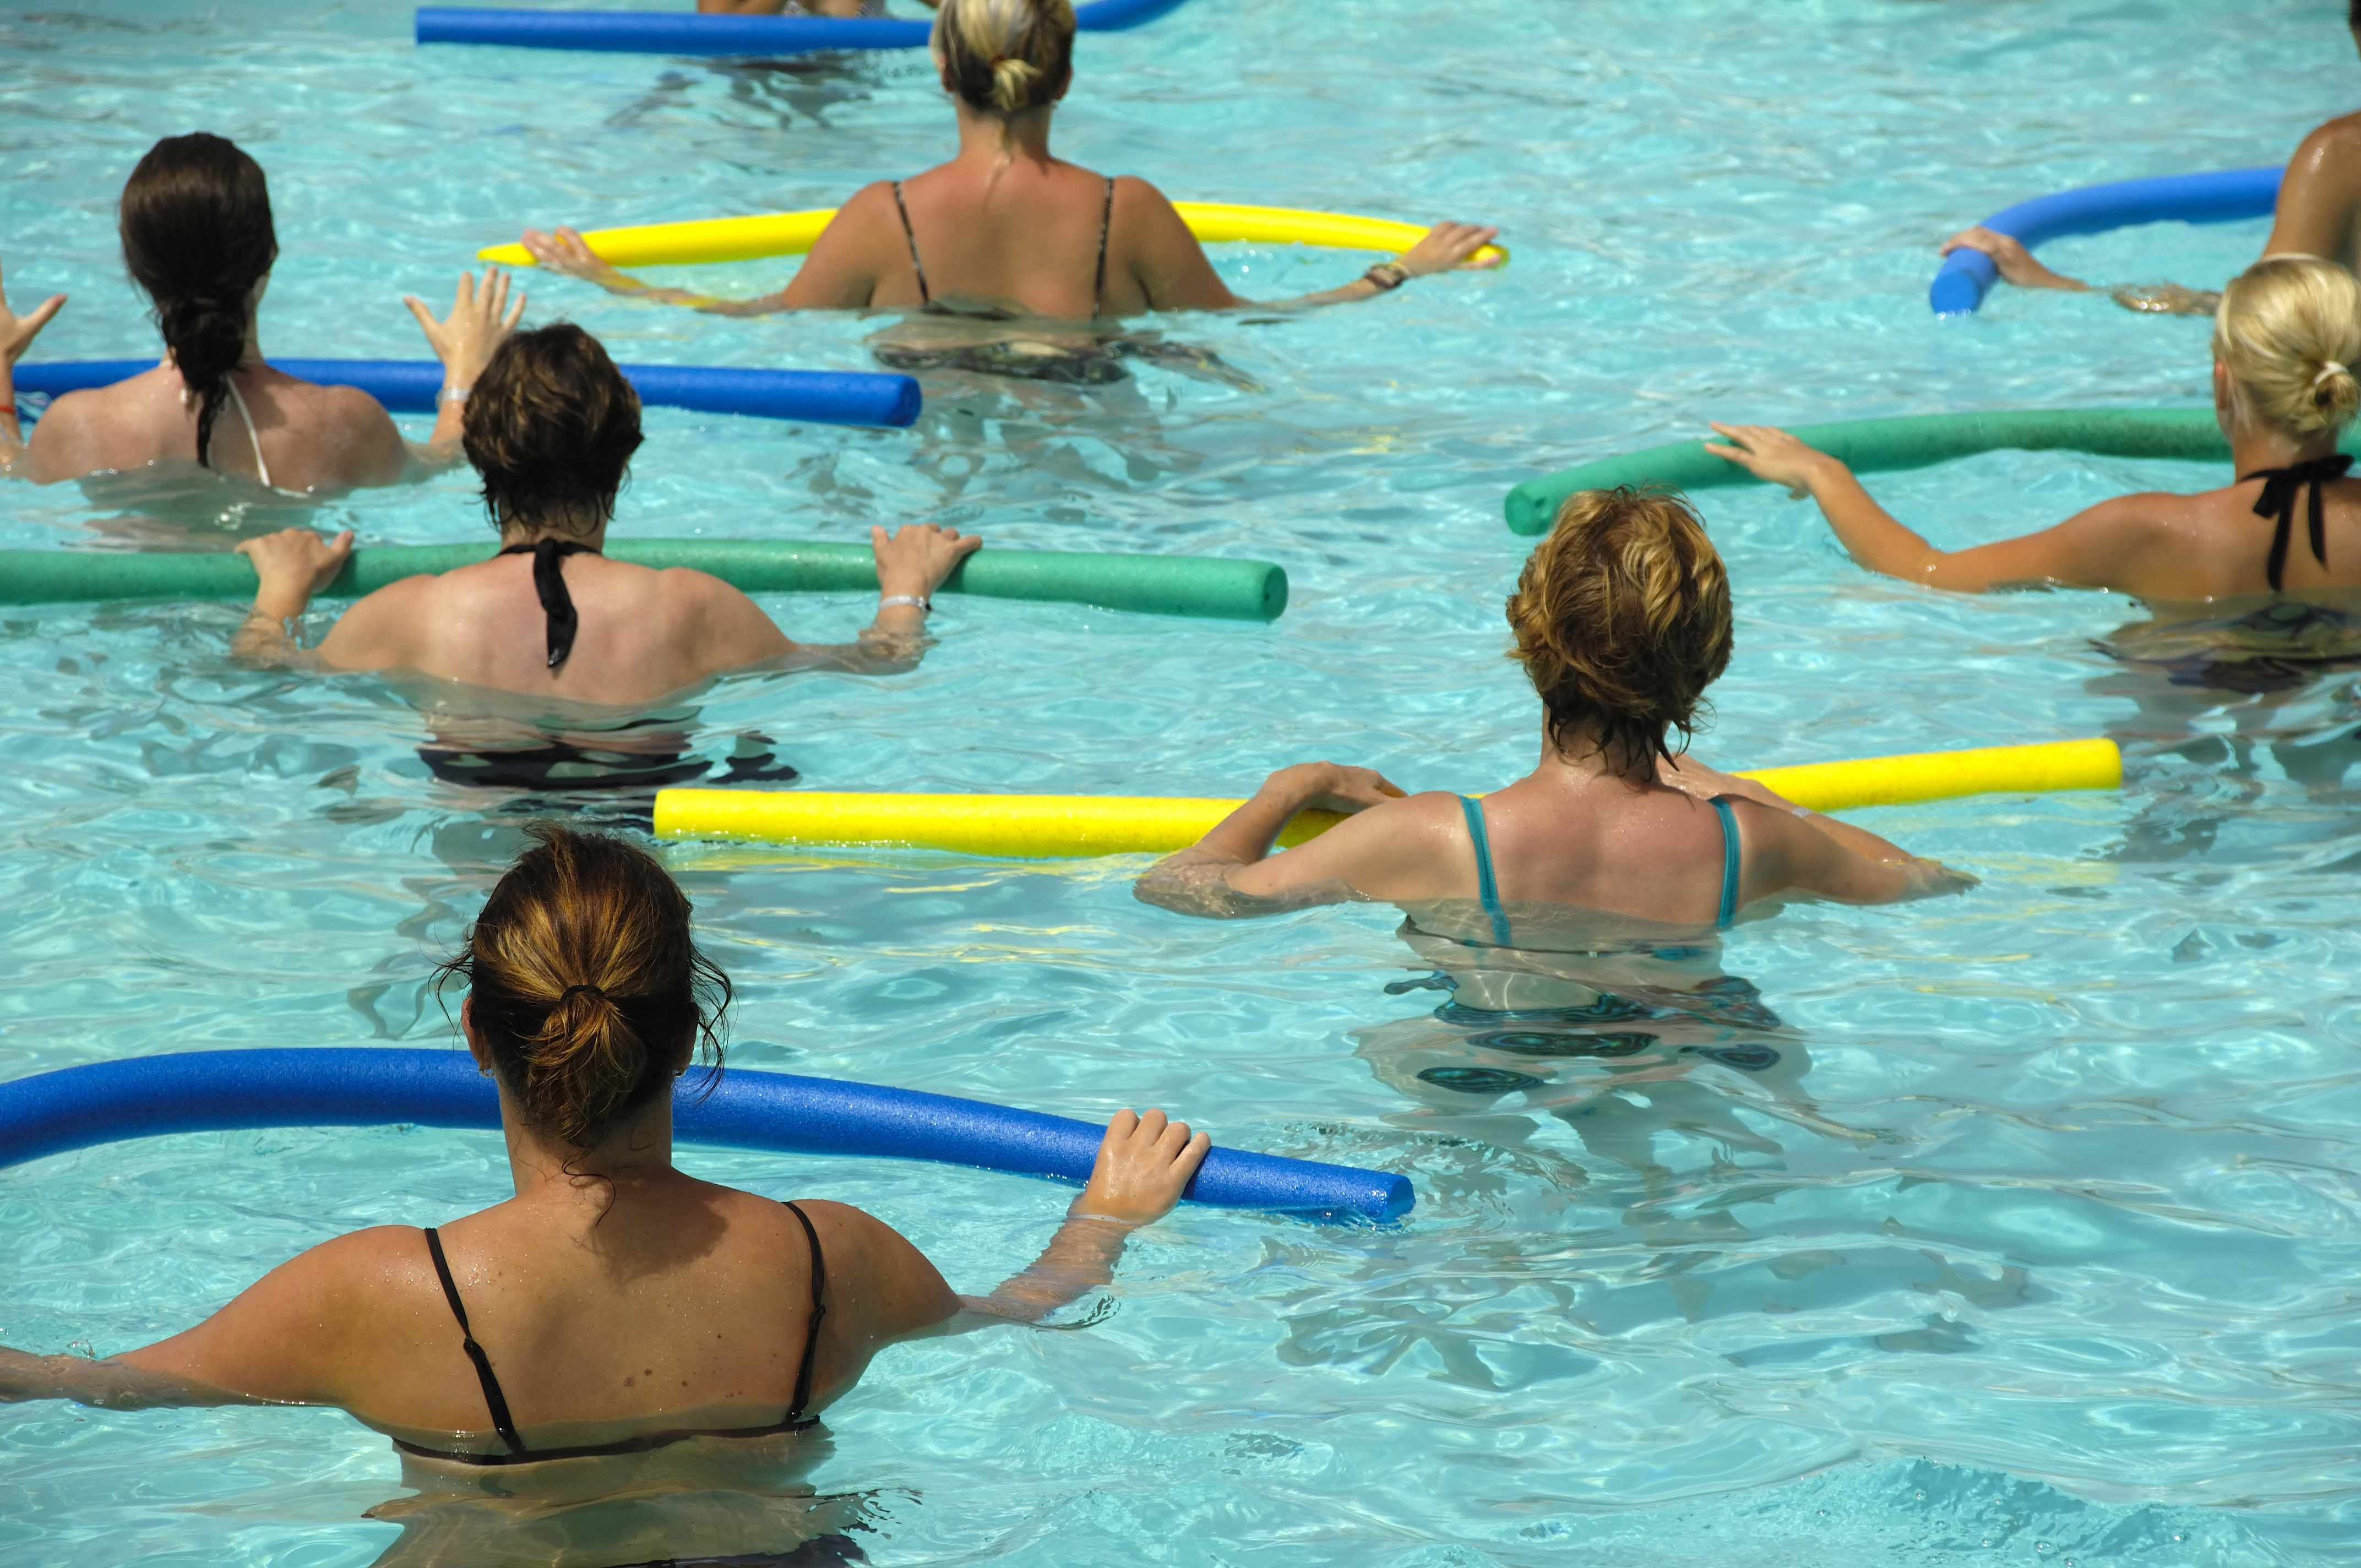 exercise class in swimming pool doing water aerobics